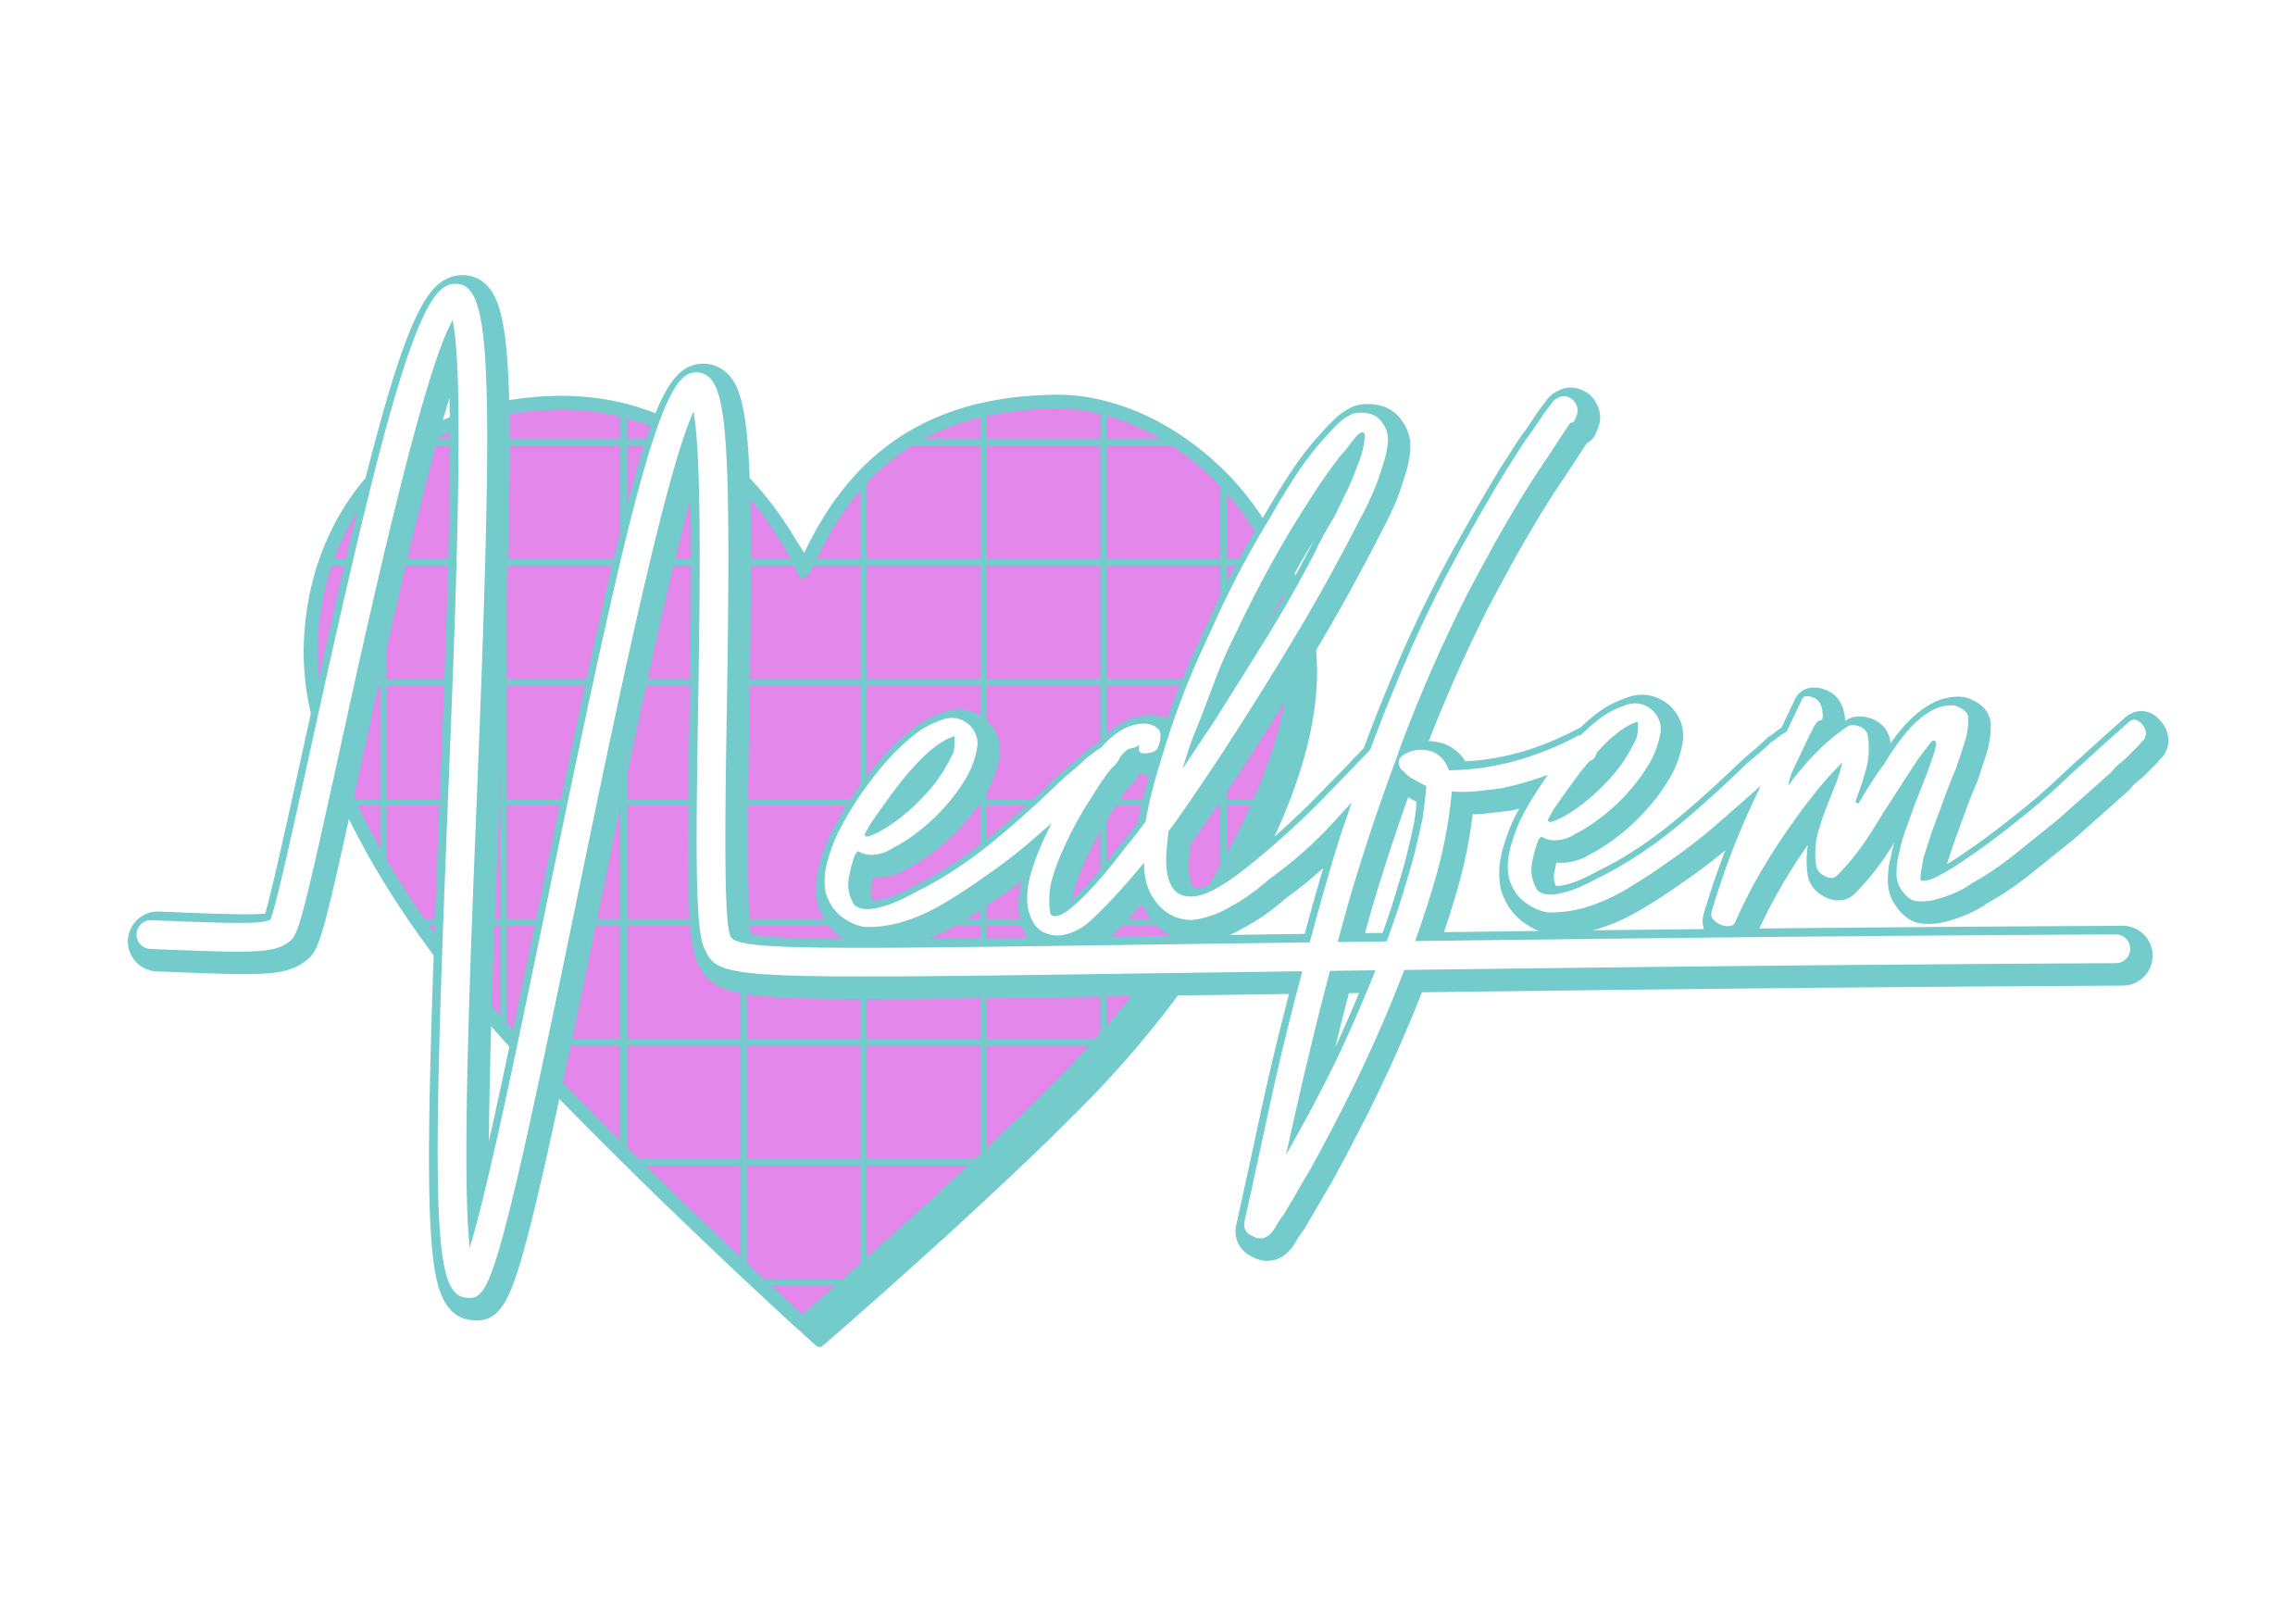 Medfem - Medfem is a med fam for women. Our aims are bold but important: Use feminist theory to change the culture of medicine for the better for all genders, address gender inequality in the field, and offer a different approach to women's health education.